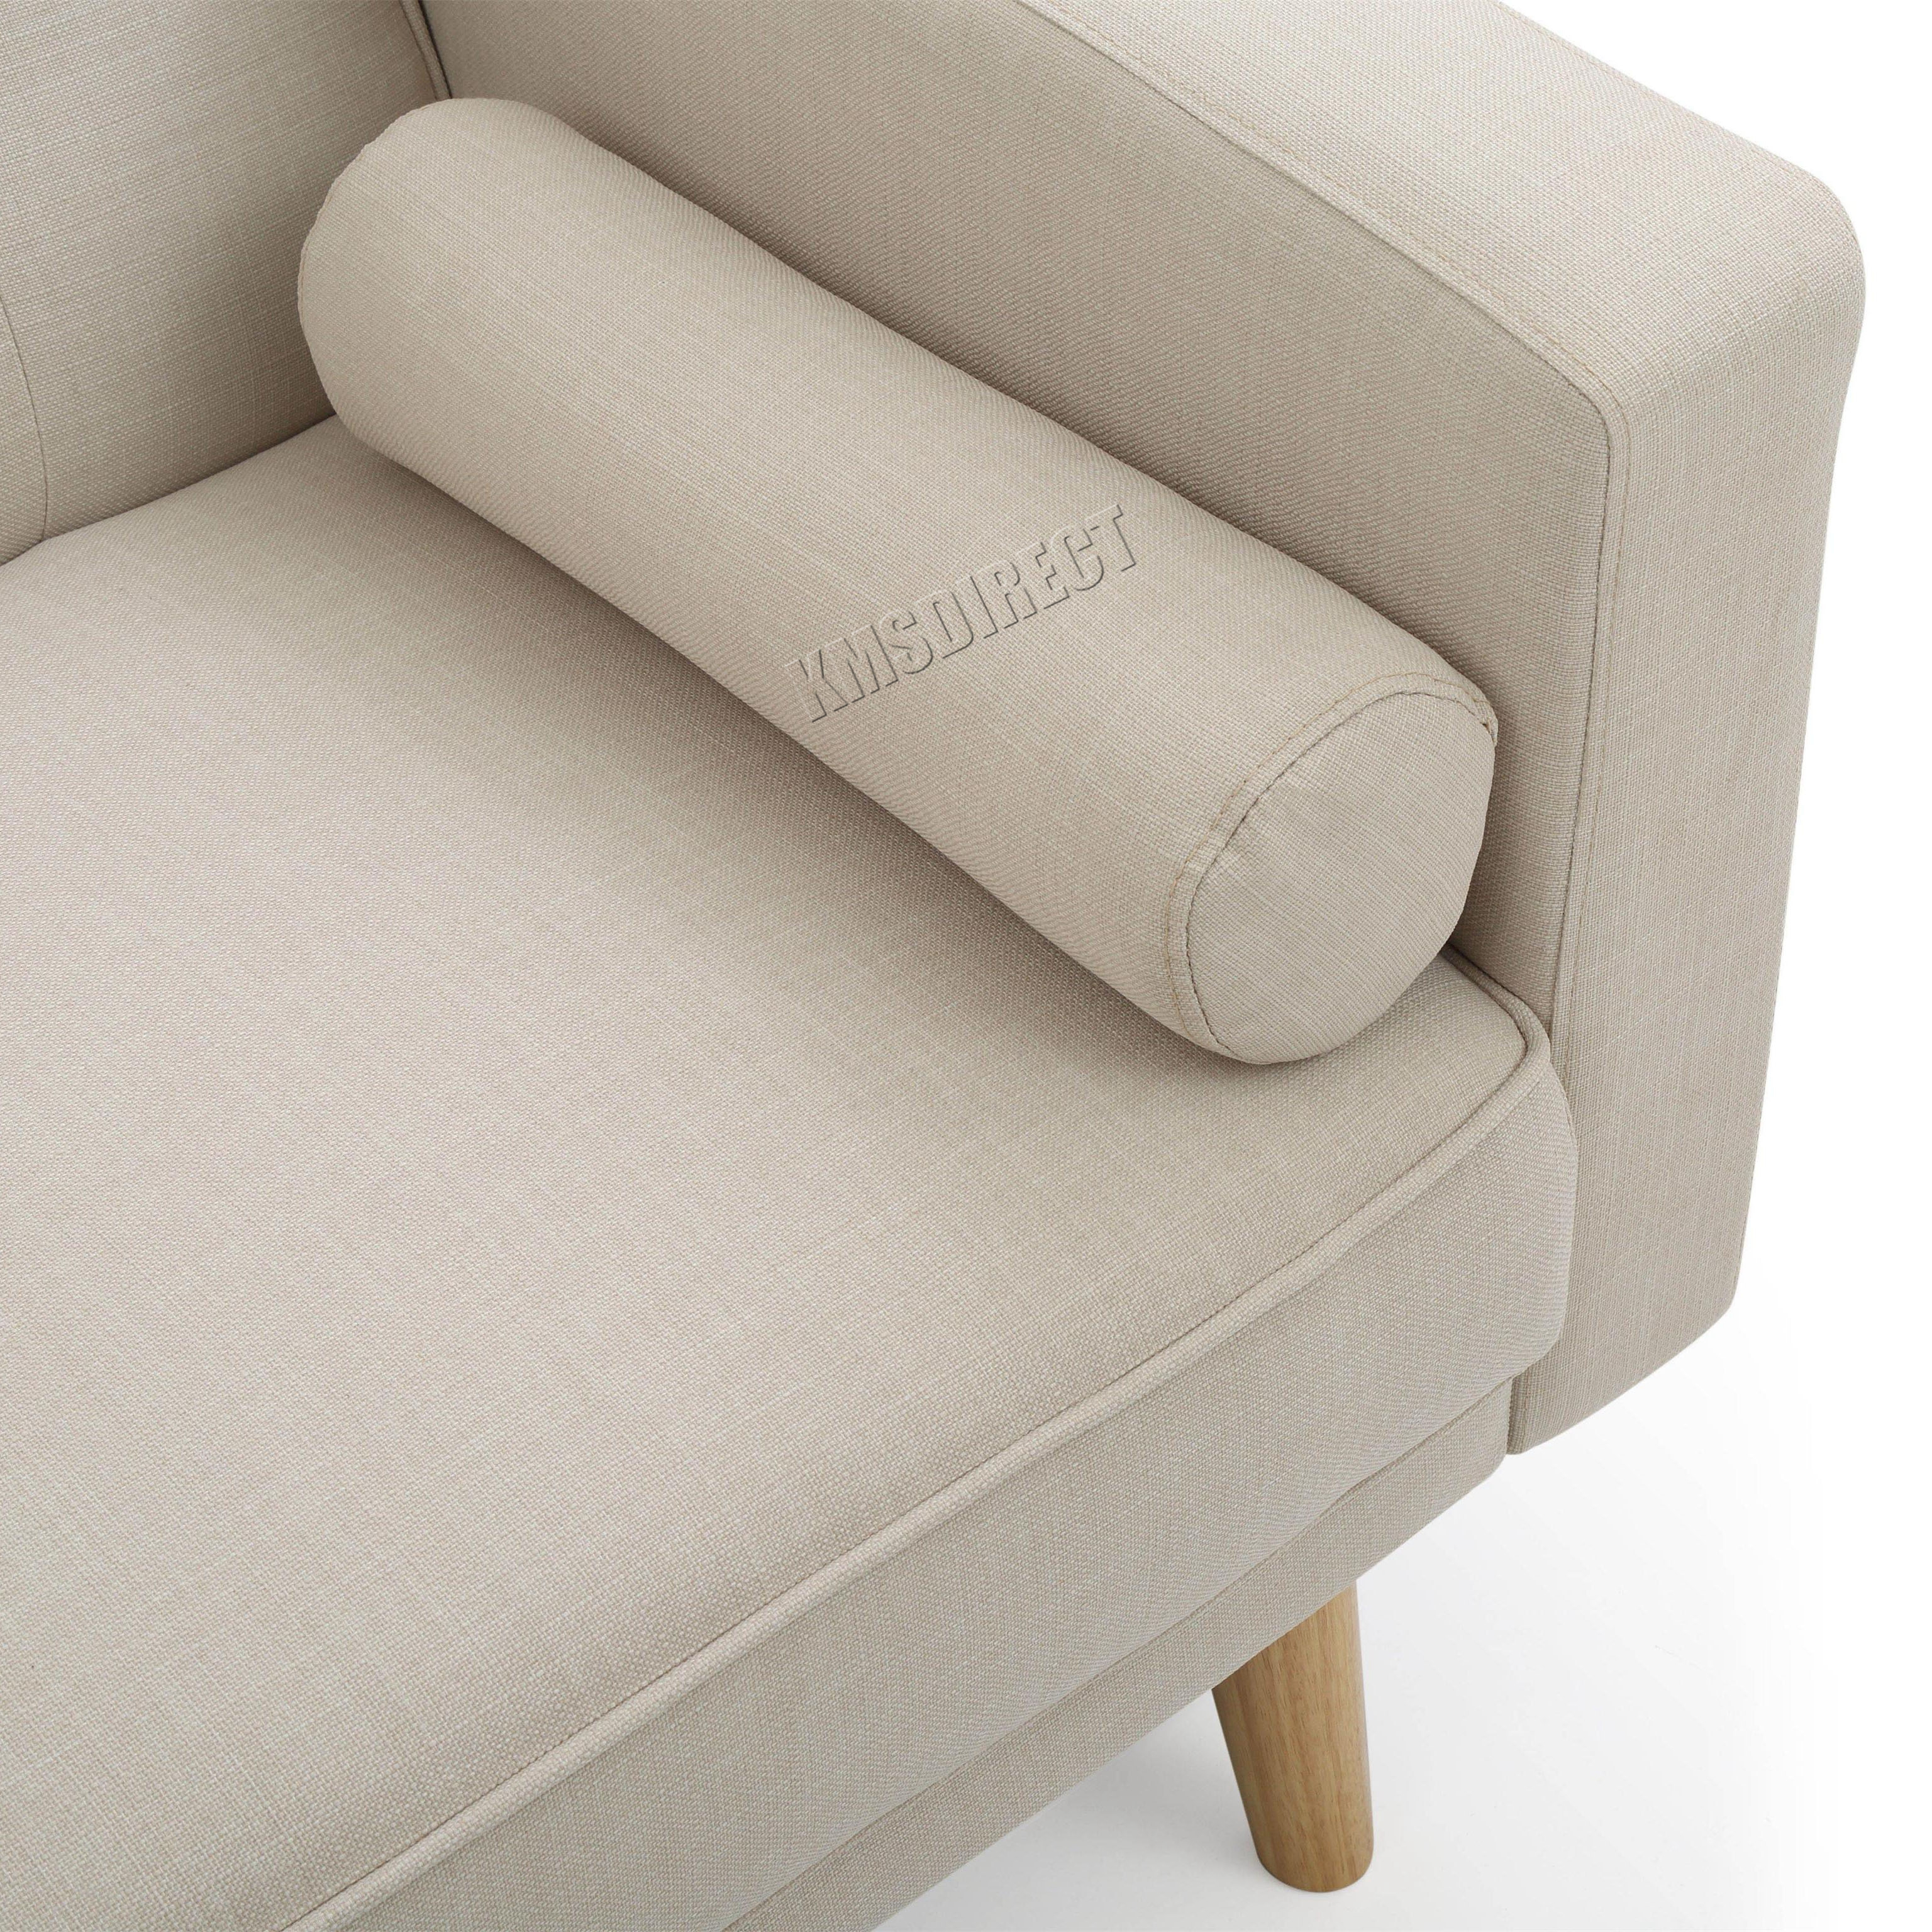 FoxHunter Fabric Sofa Bed 3 Seater Couch Luxury Home ...